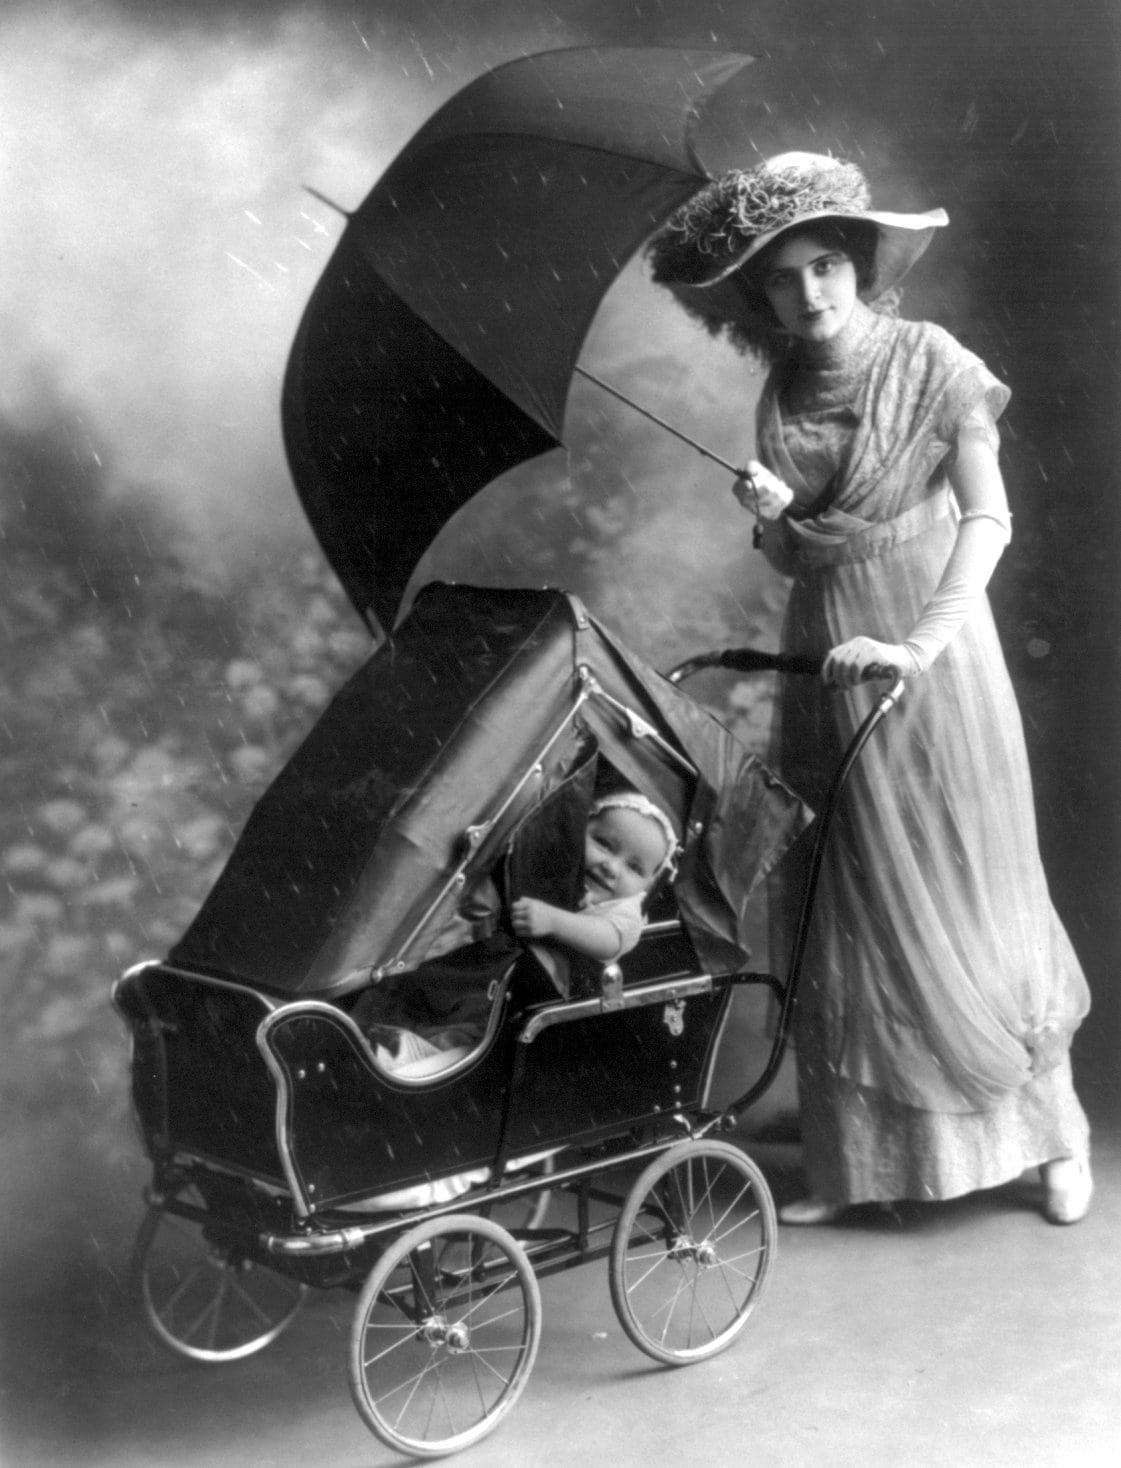 Baby pram-carriage with a cover in the rain (1913)